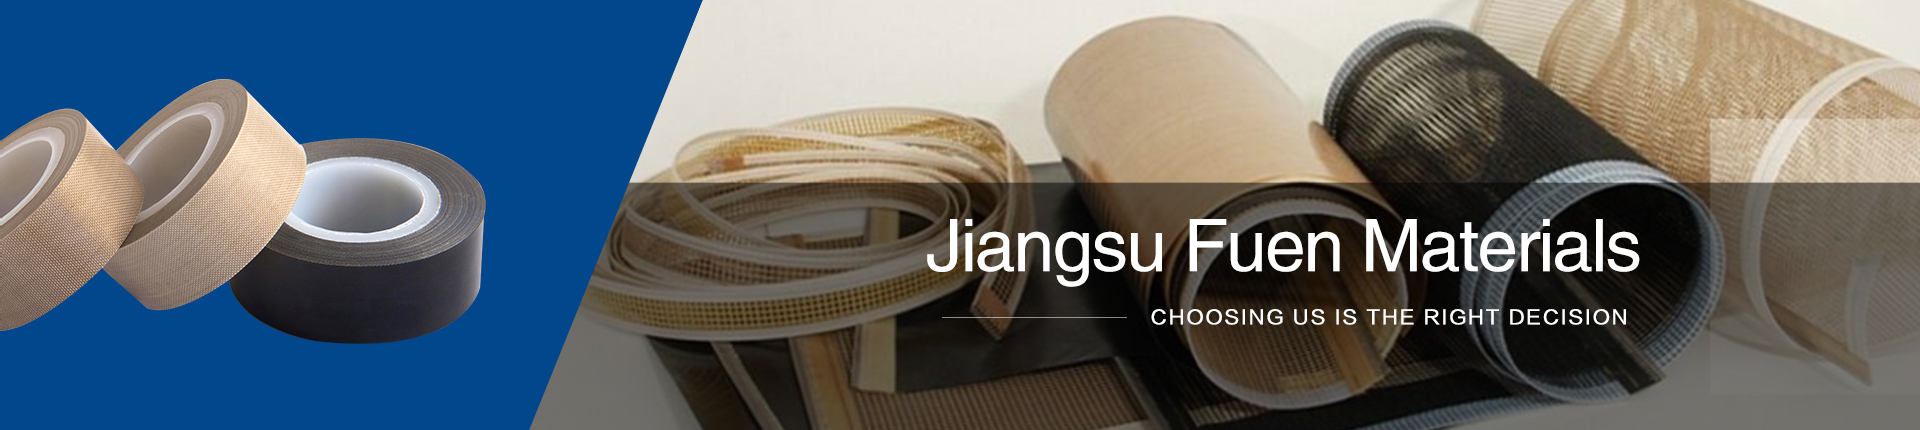 Jiangsu fuen material technology co., LTD.